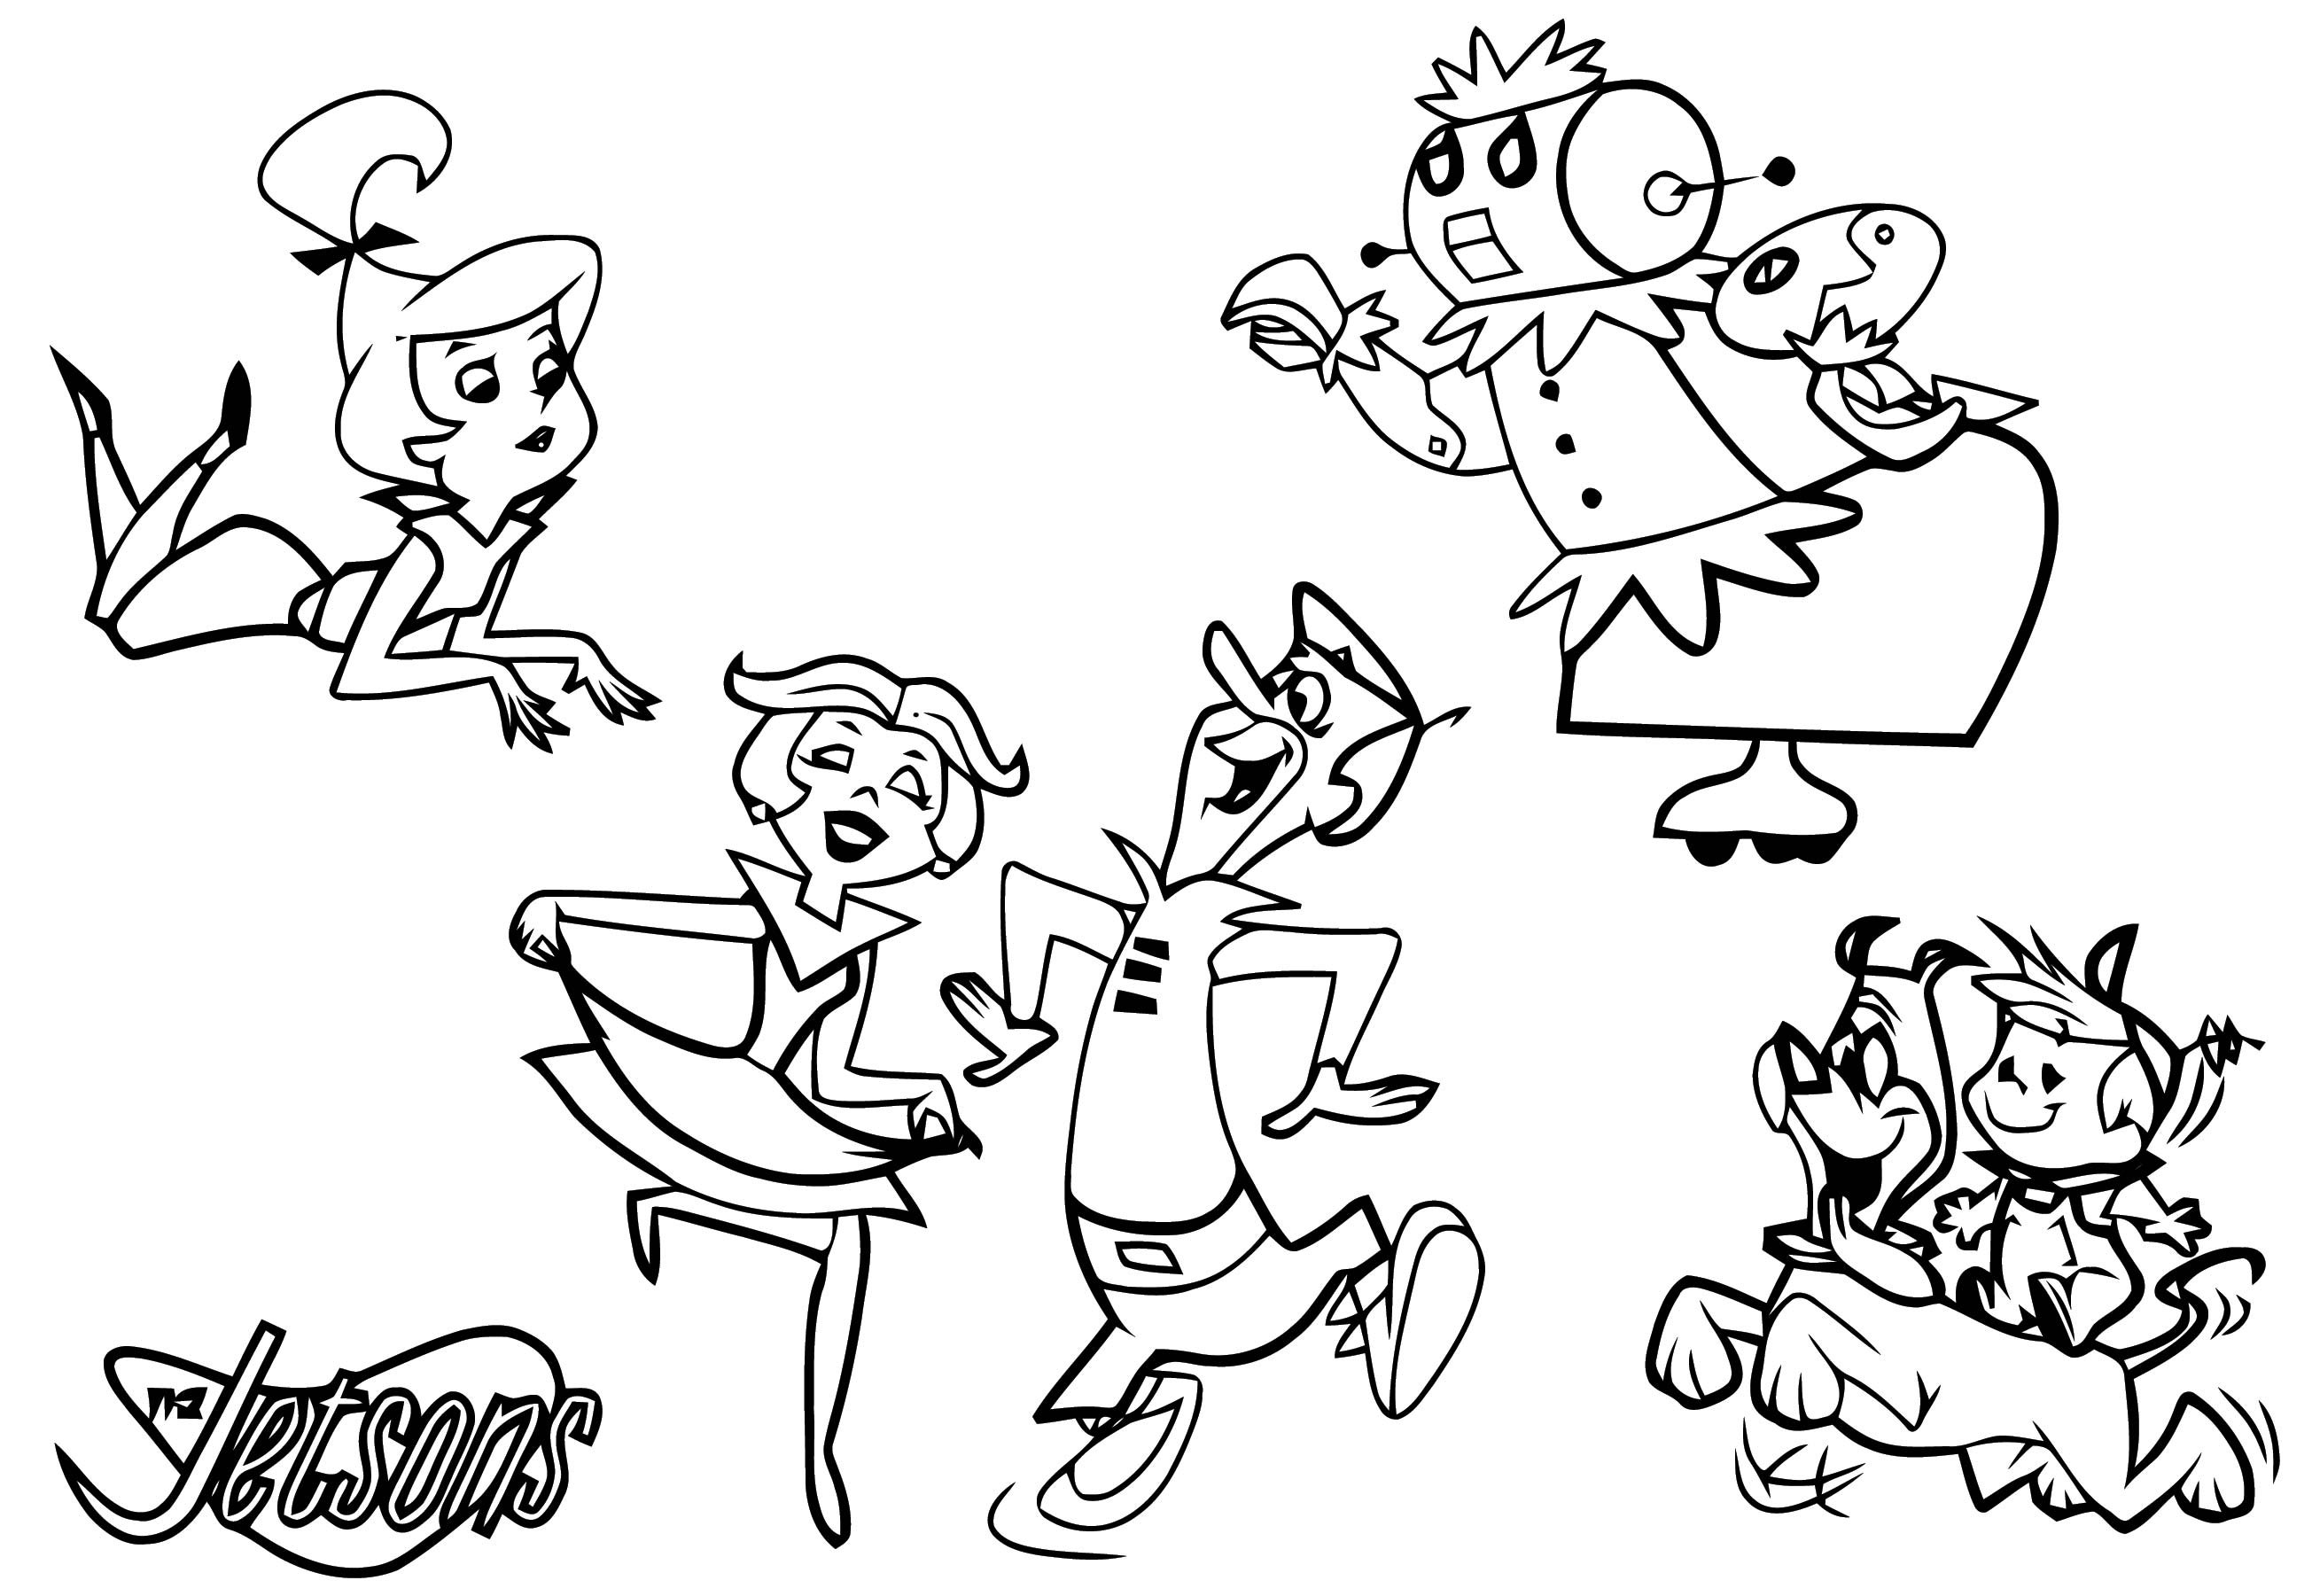 Jetsons Coloring Page 110